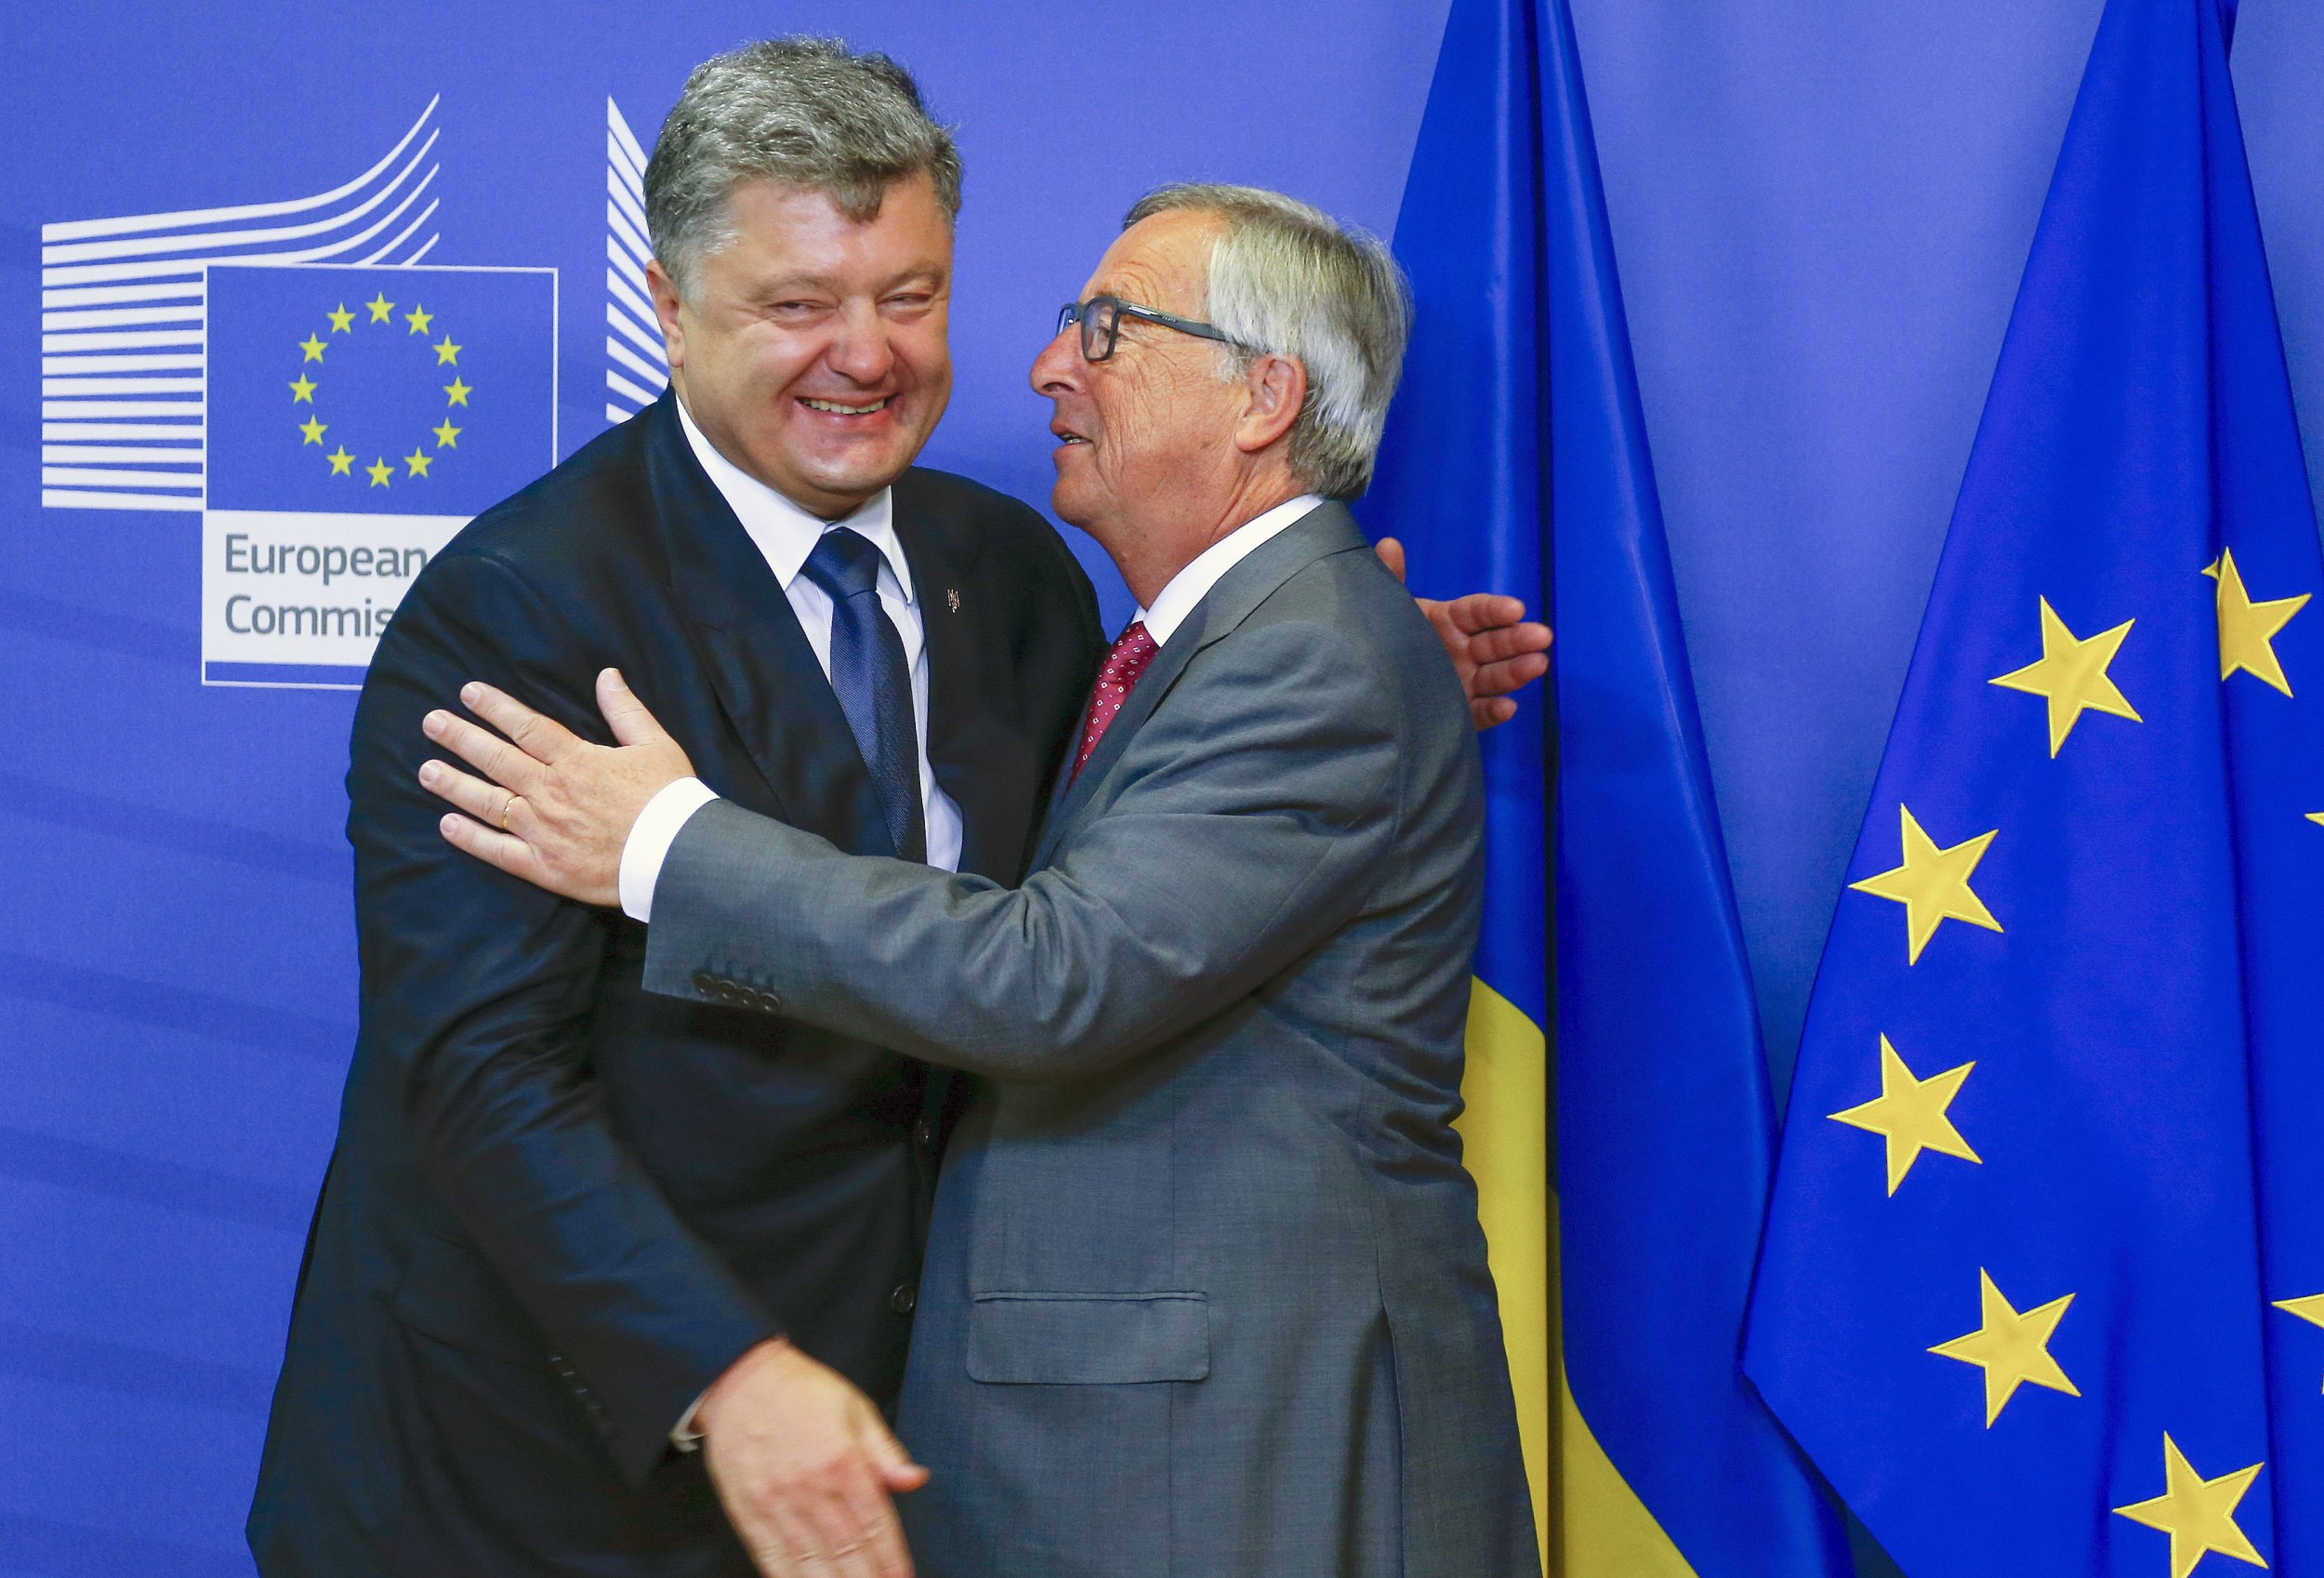 Poroshenko and Juncker hug